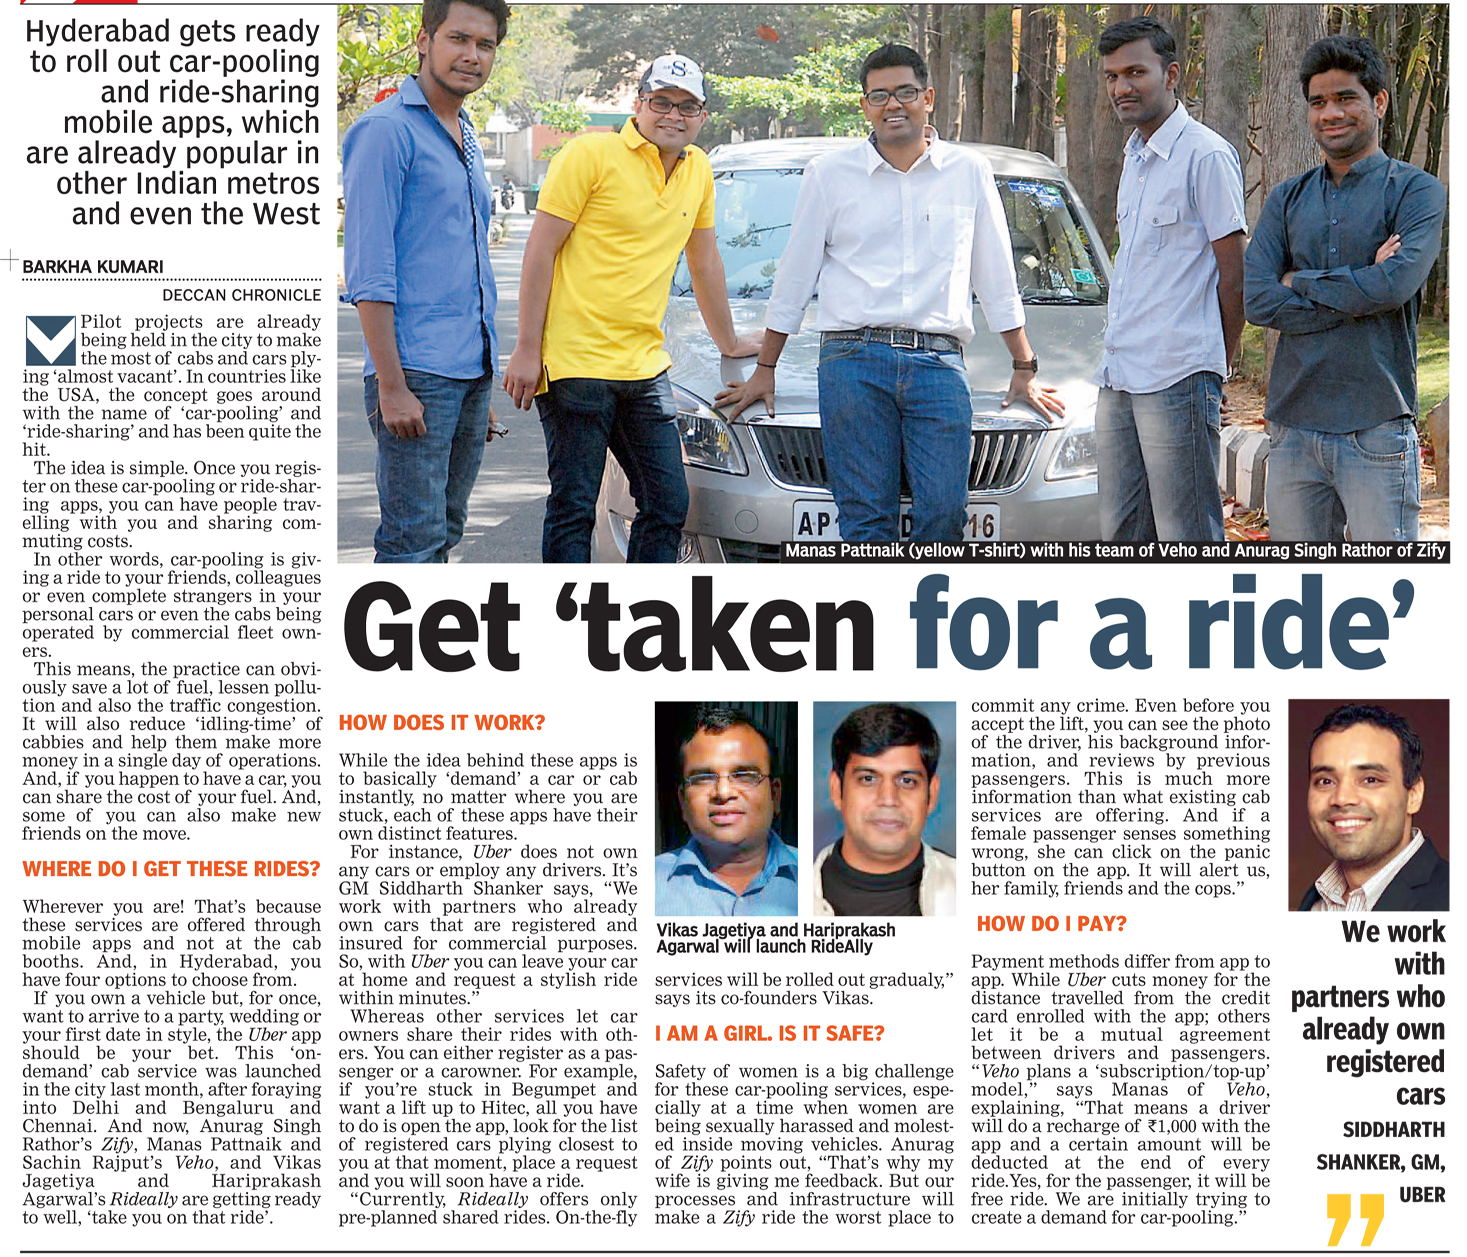 http://prodtst.rideally.com/static/images/Deccan_Chronicle_RideAlly_20140211.png